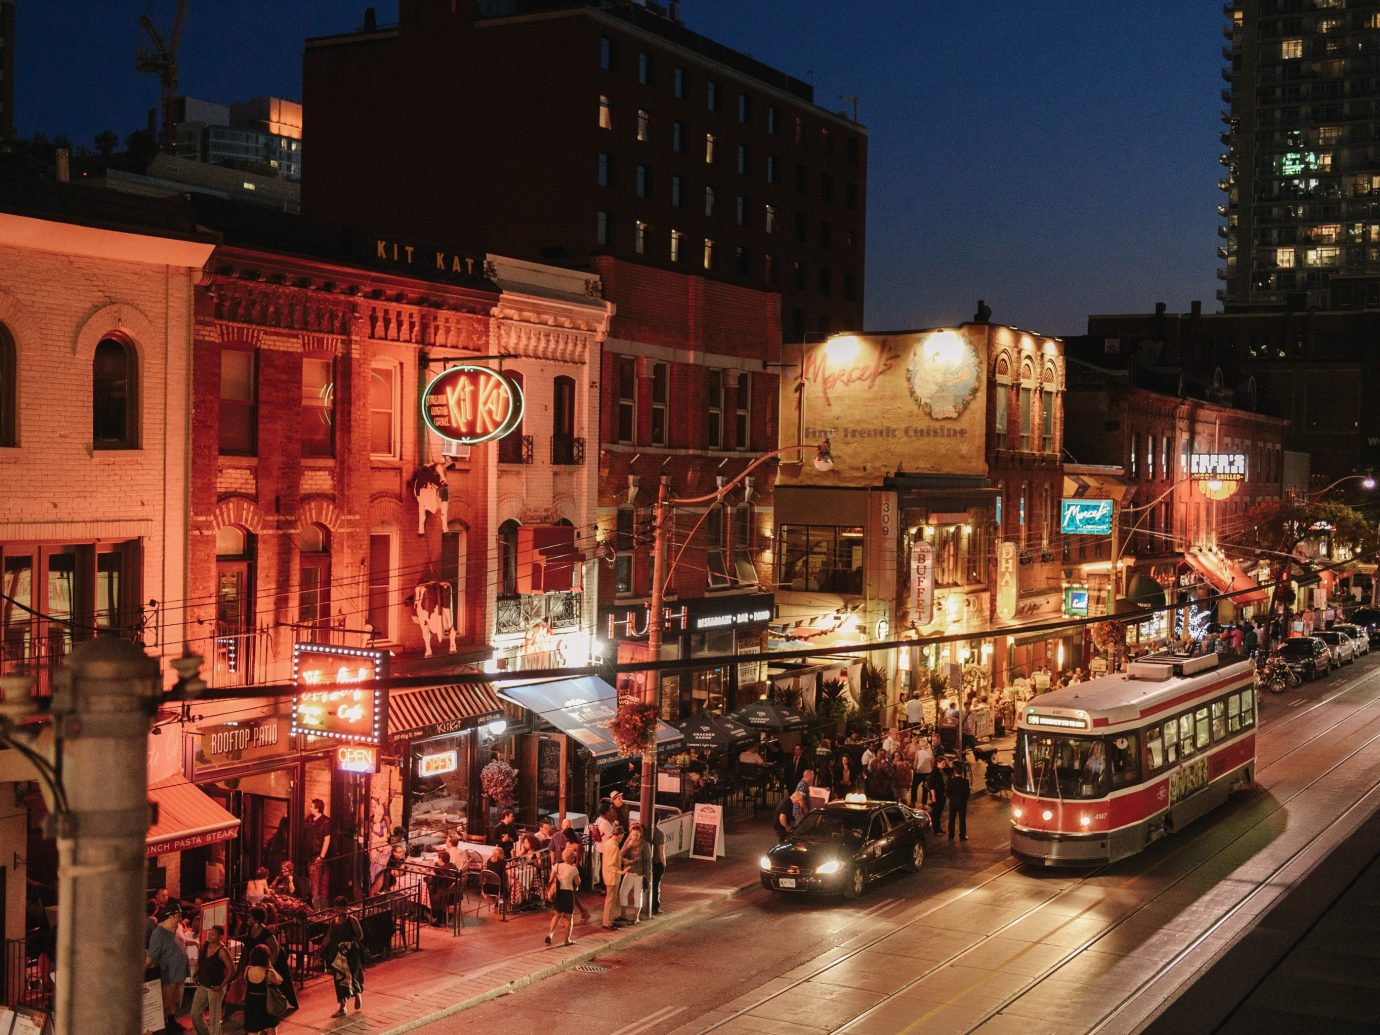 Canada Montreal Toronto Trip Ideas building outdoor road night Town City street urban area human settlement neighbourhood metropolis evening Downtown cityscape lighting infrastructure busy